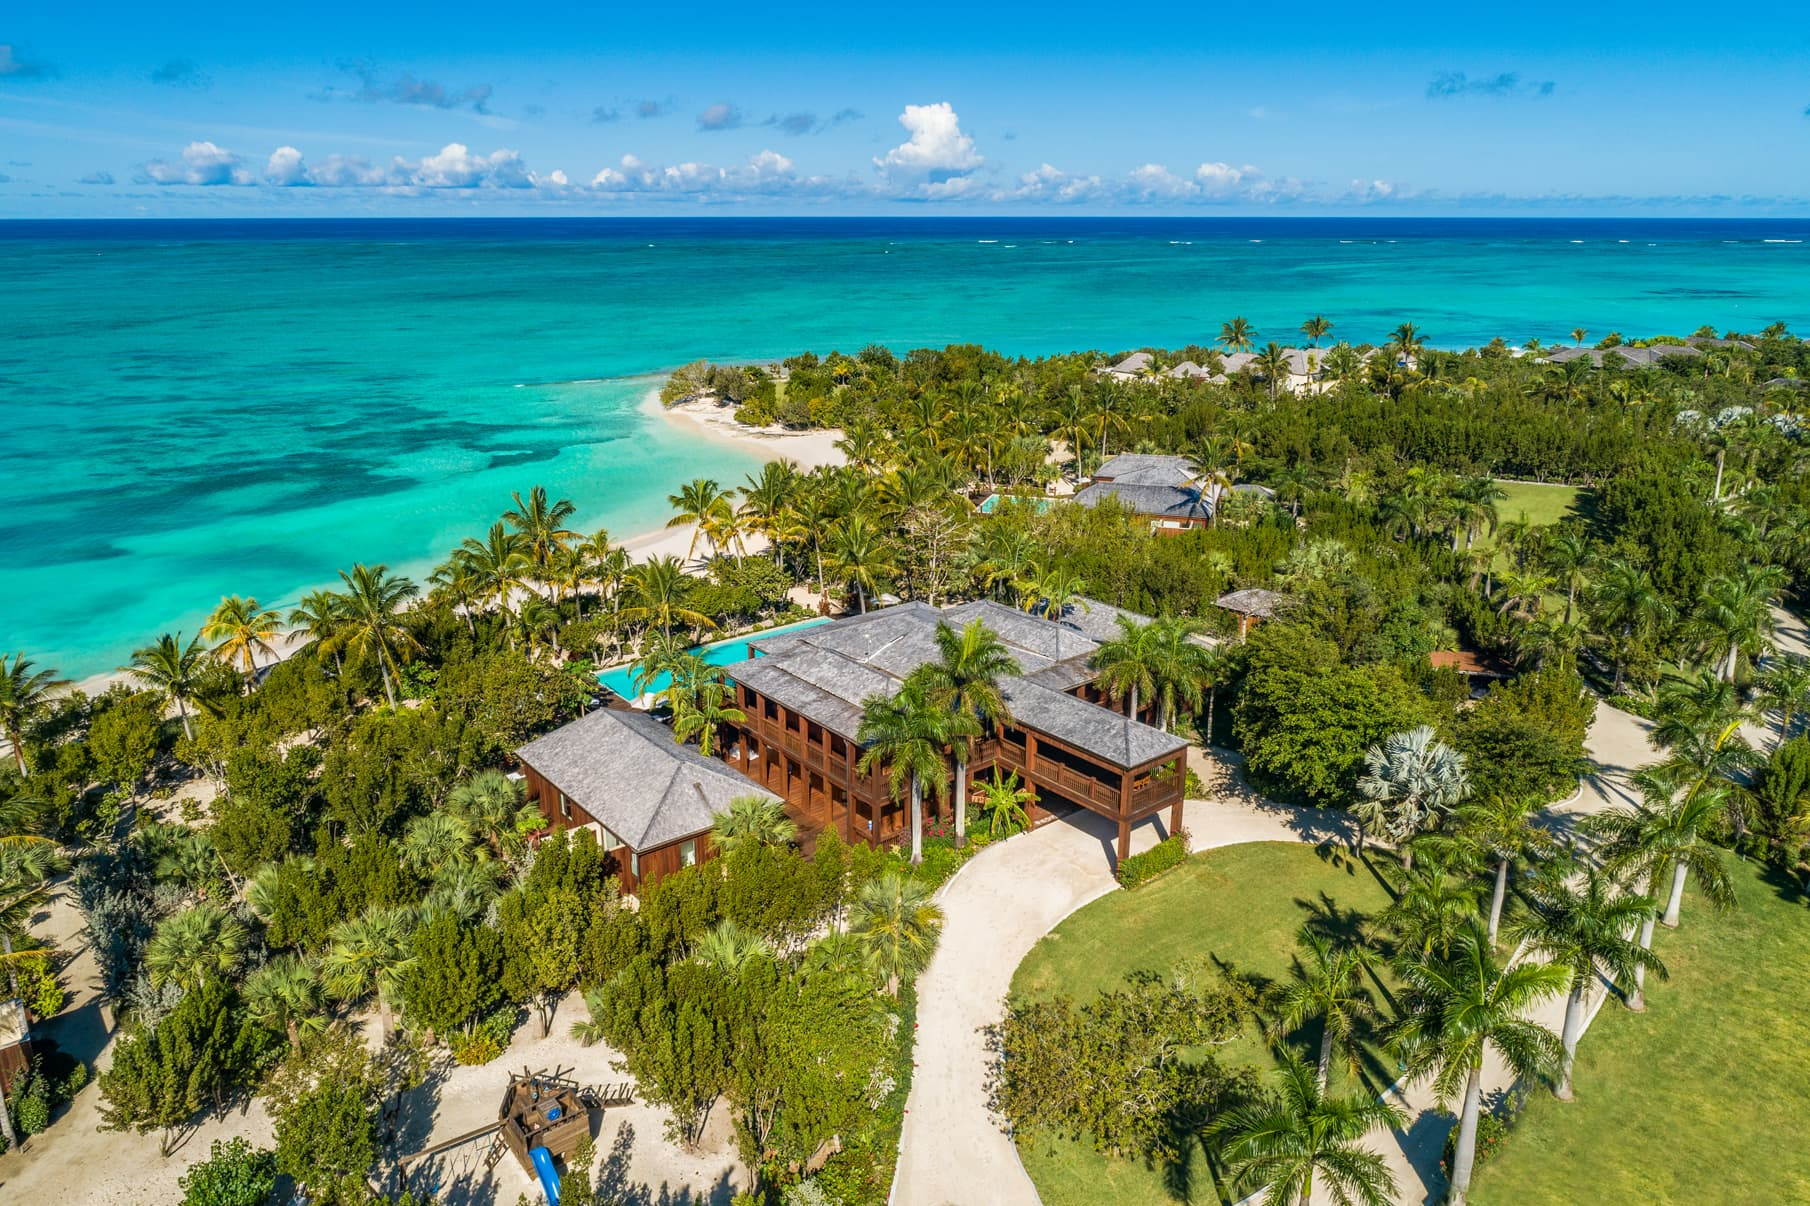 Photos: Bruce Willis is selling beachfront Turks & Caicos